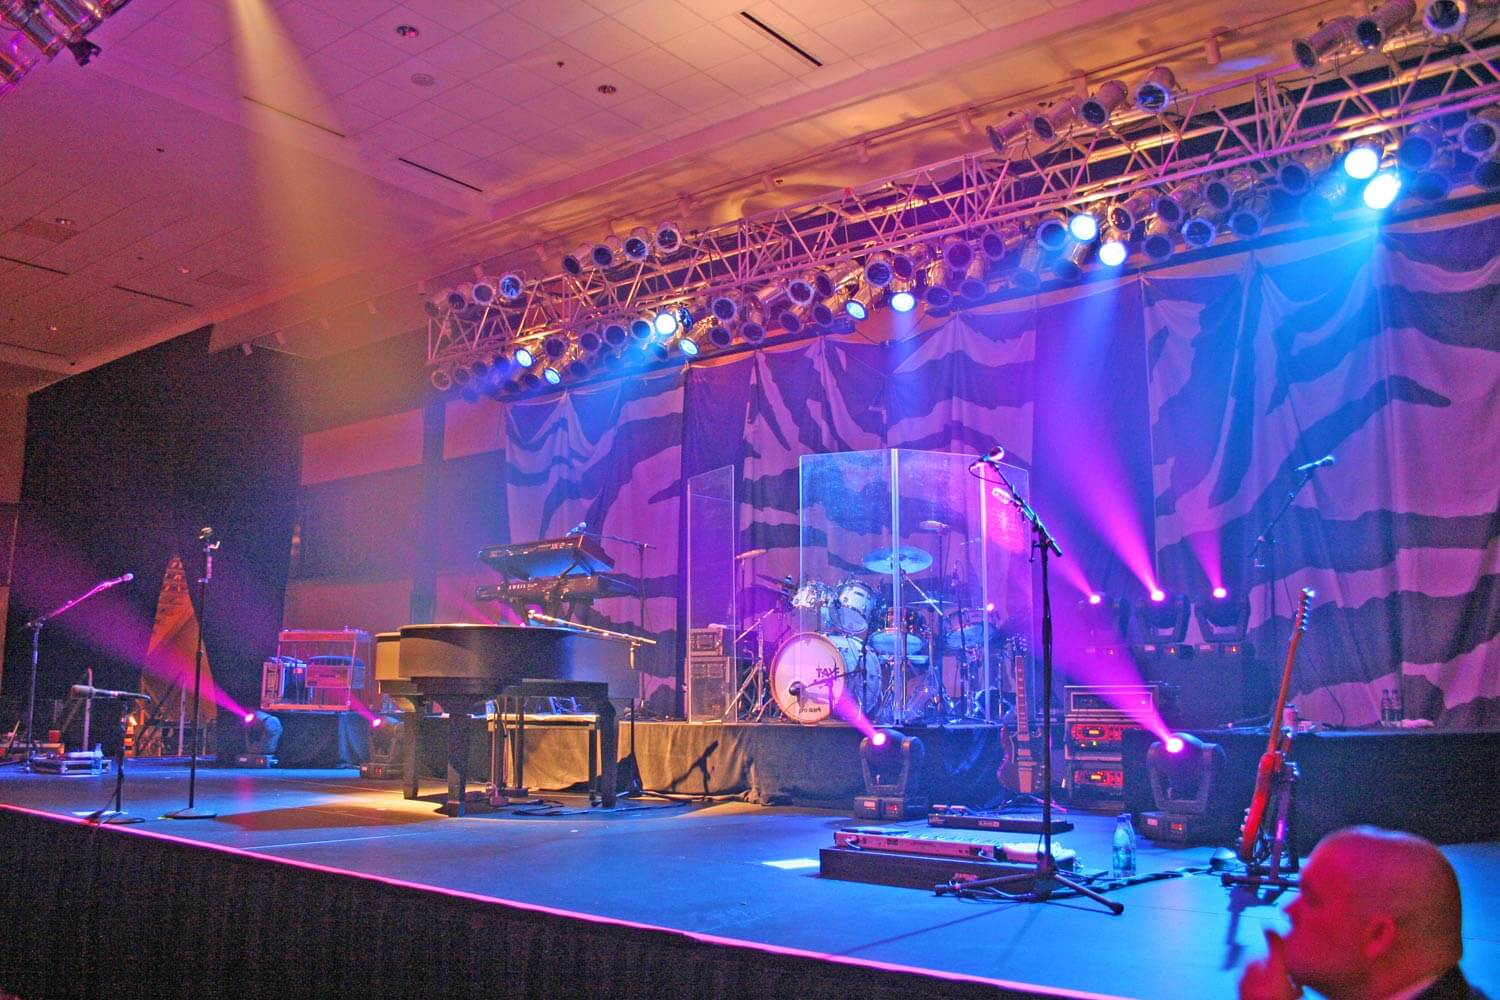 The Stage at the Grand Casino Image